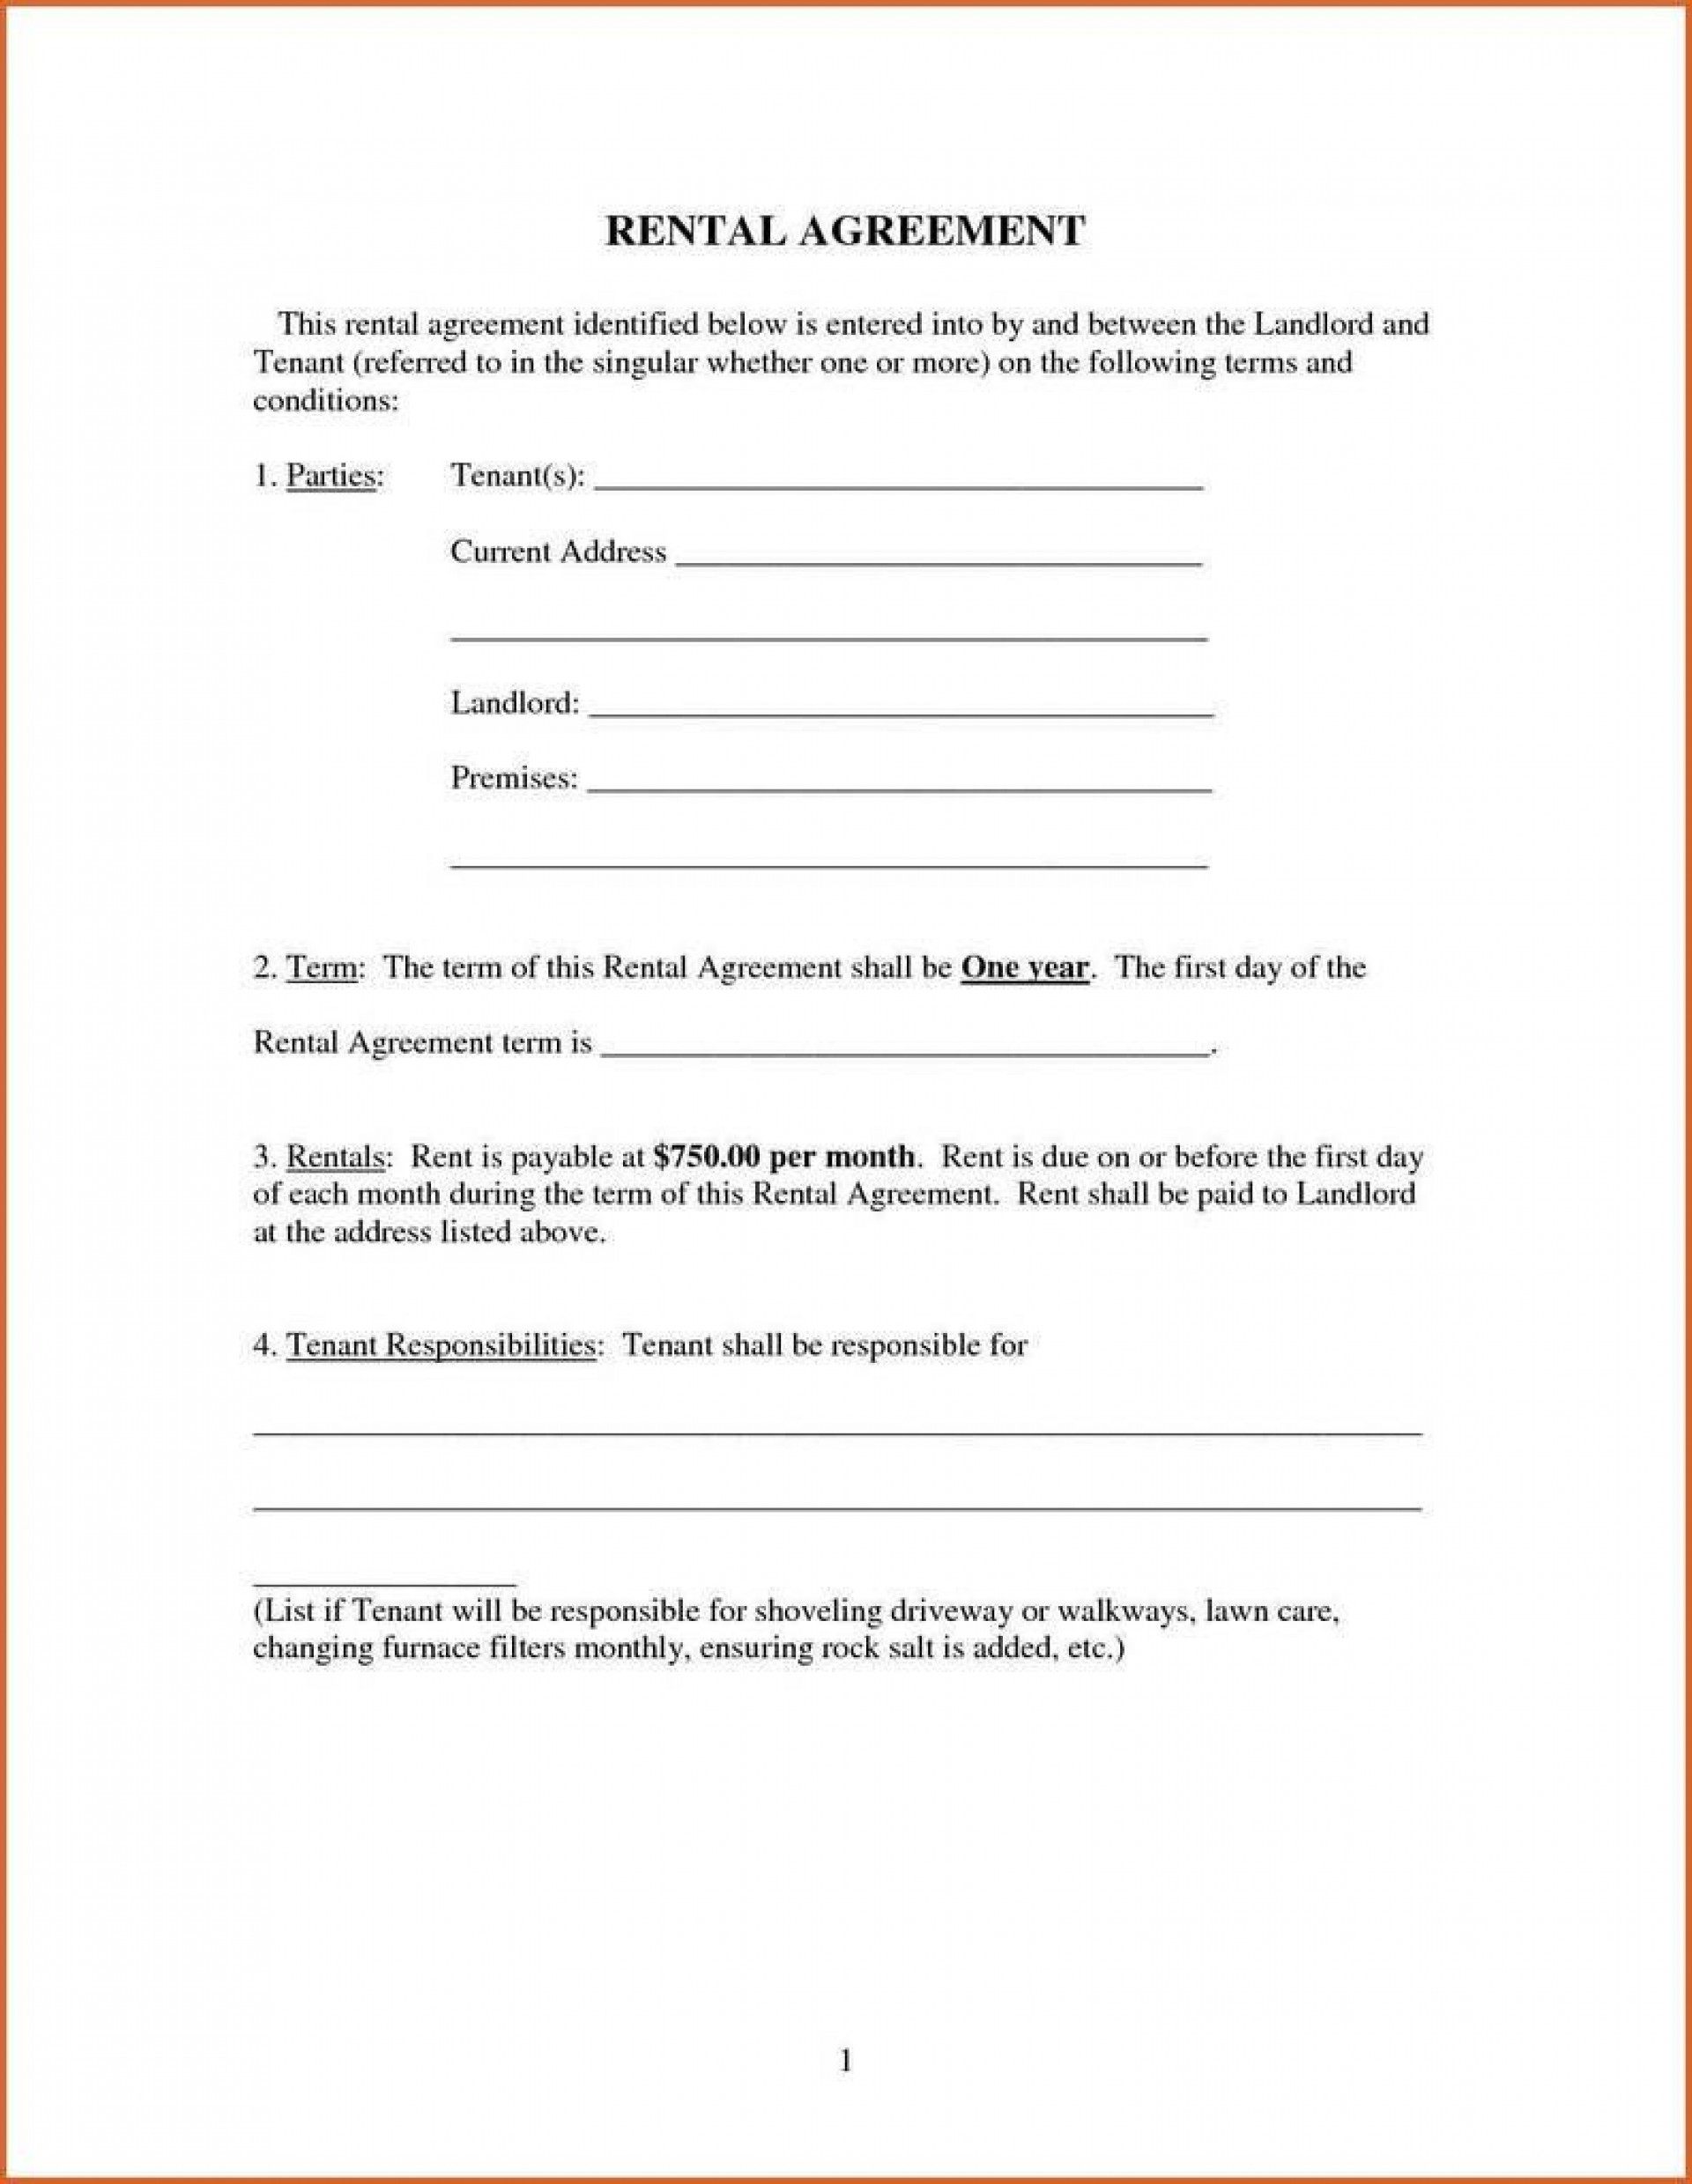 009 Imposing Renter Lease Agreement Form High Definition  Rent Format In Tamil Florida Rental Printable1920